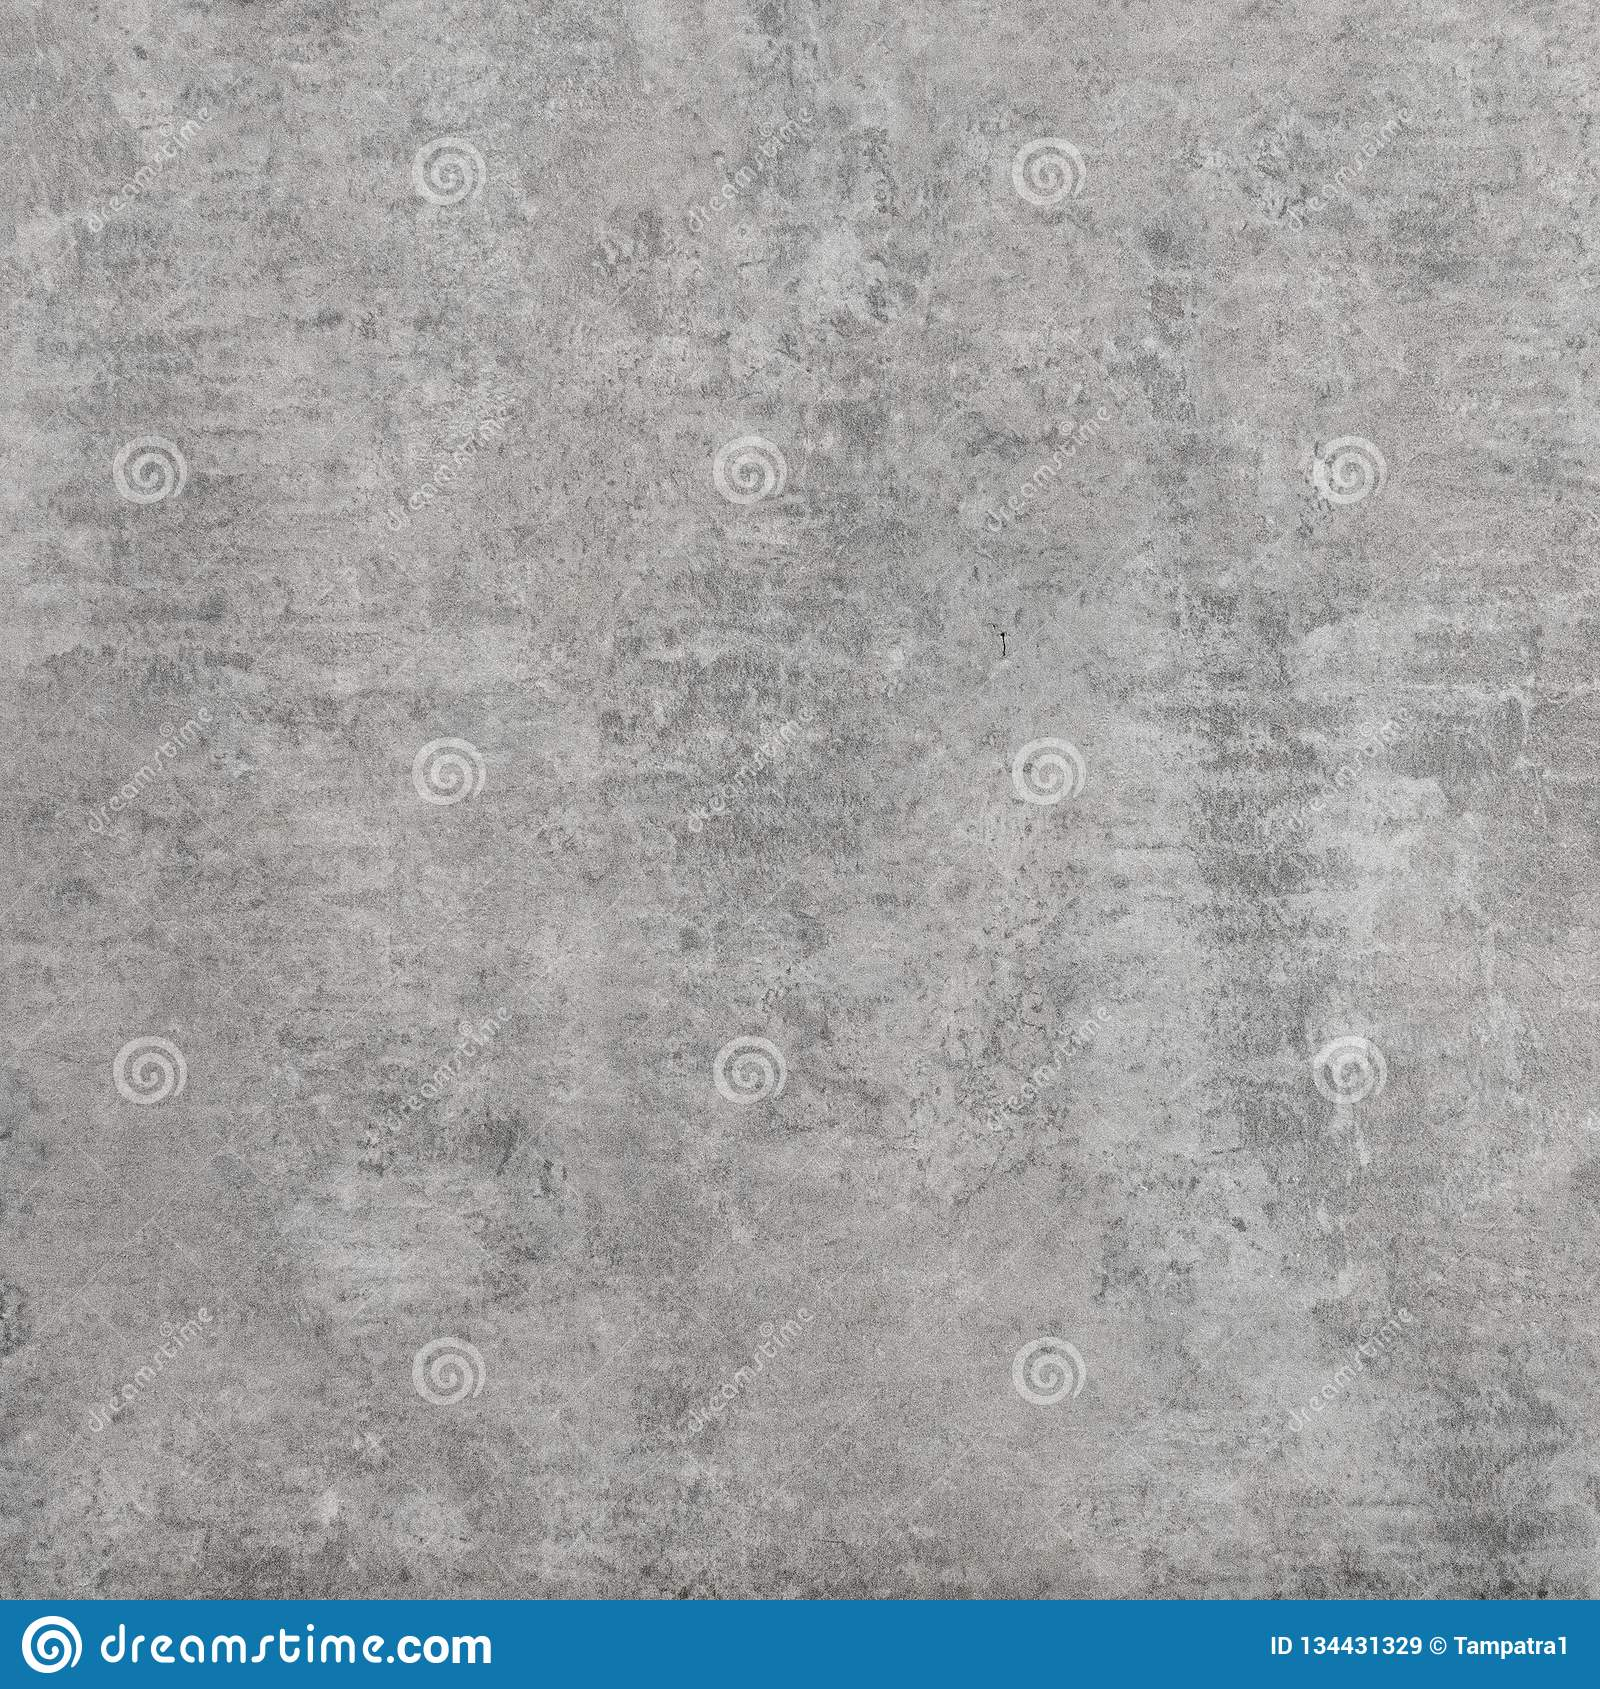 Rough grey concrete cement wall or flooring pattern surface texture. Close-up of exterior material for design decoration